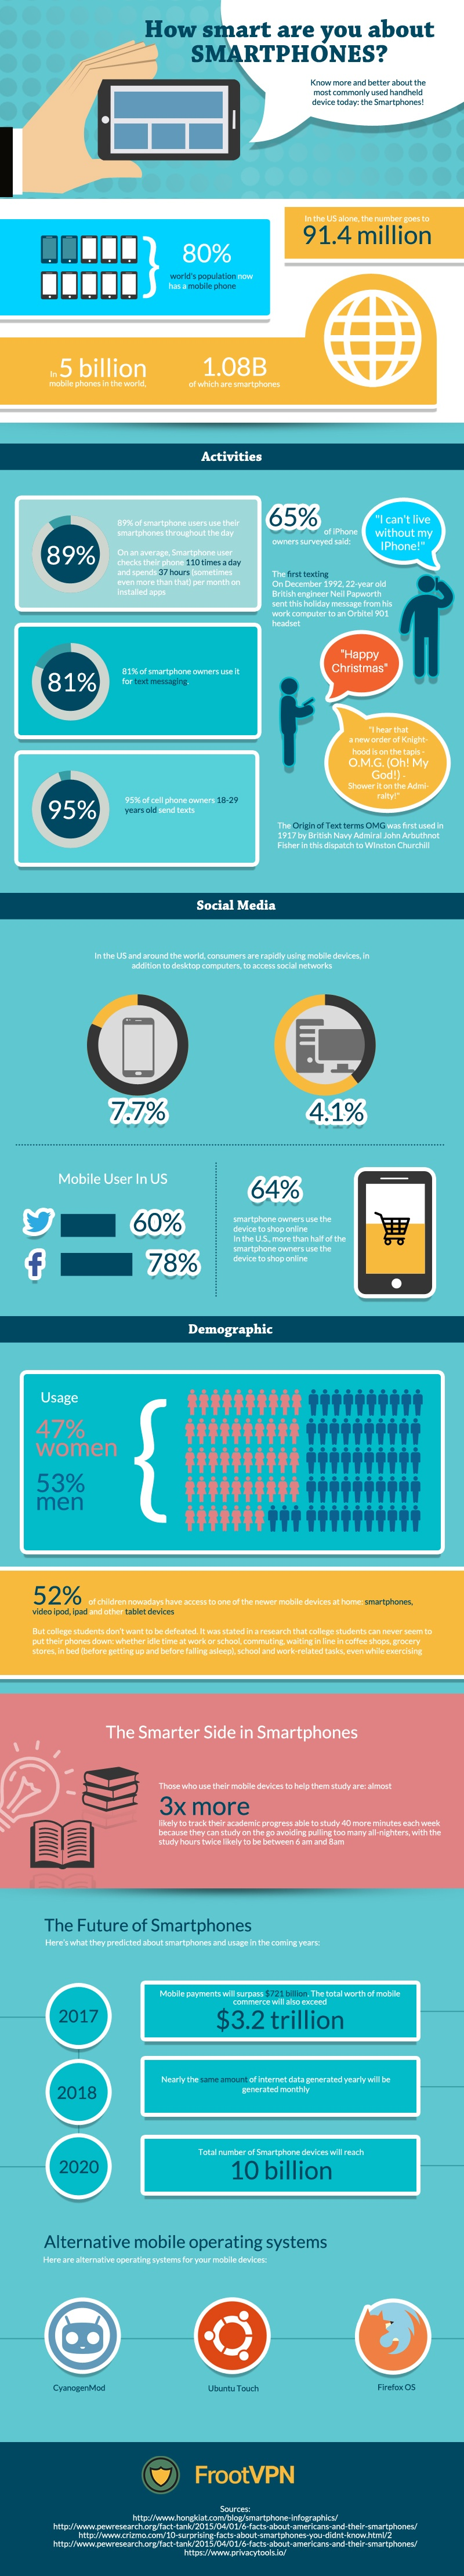 What Do You Know About Smartphones - Infographic